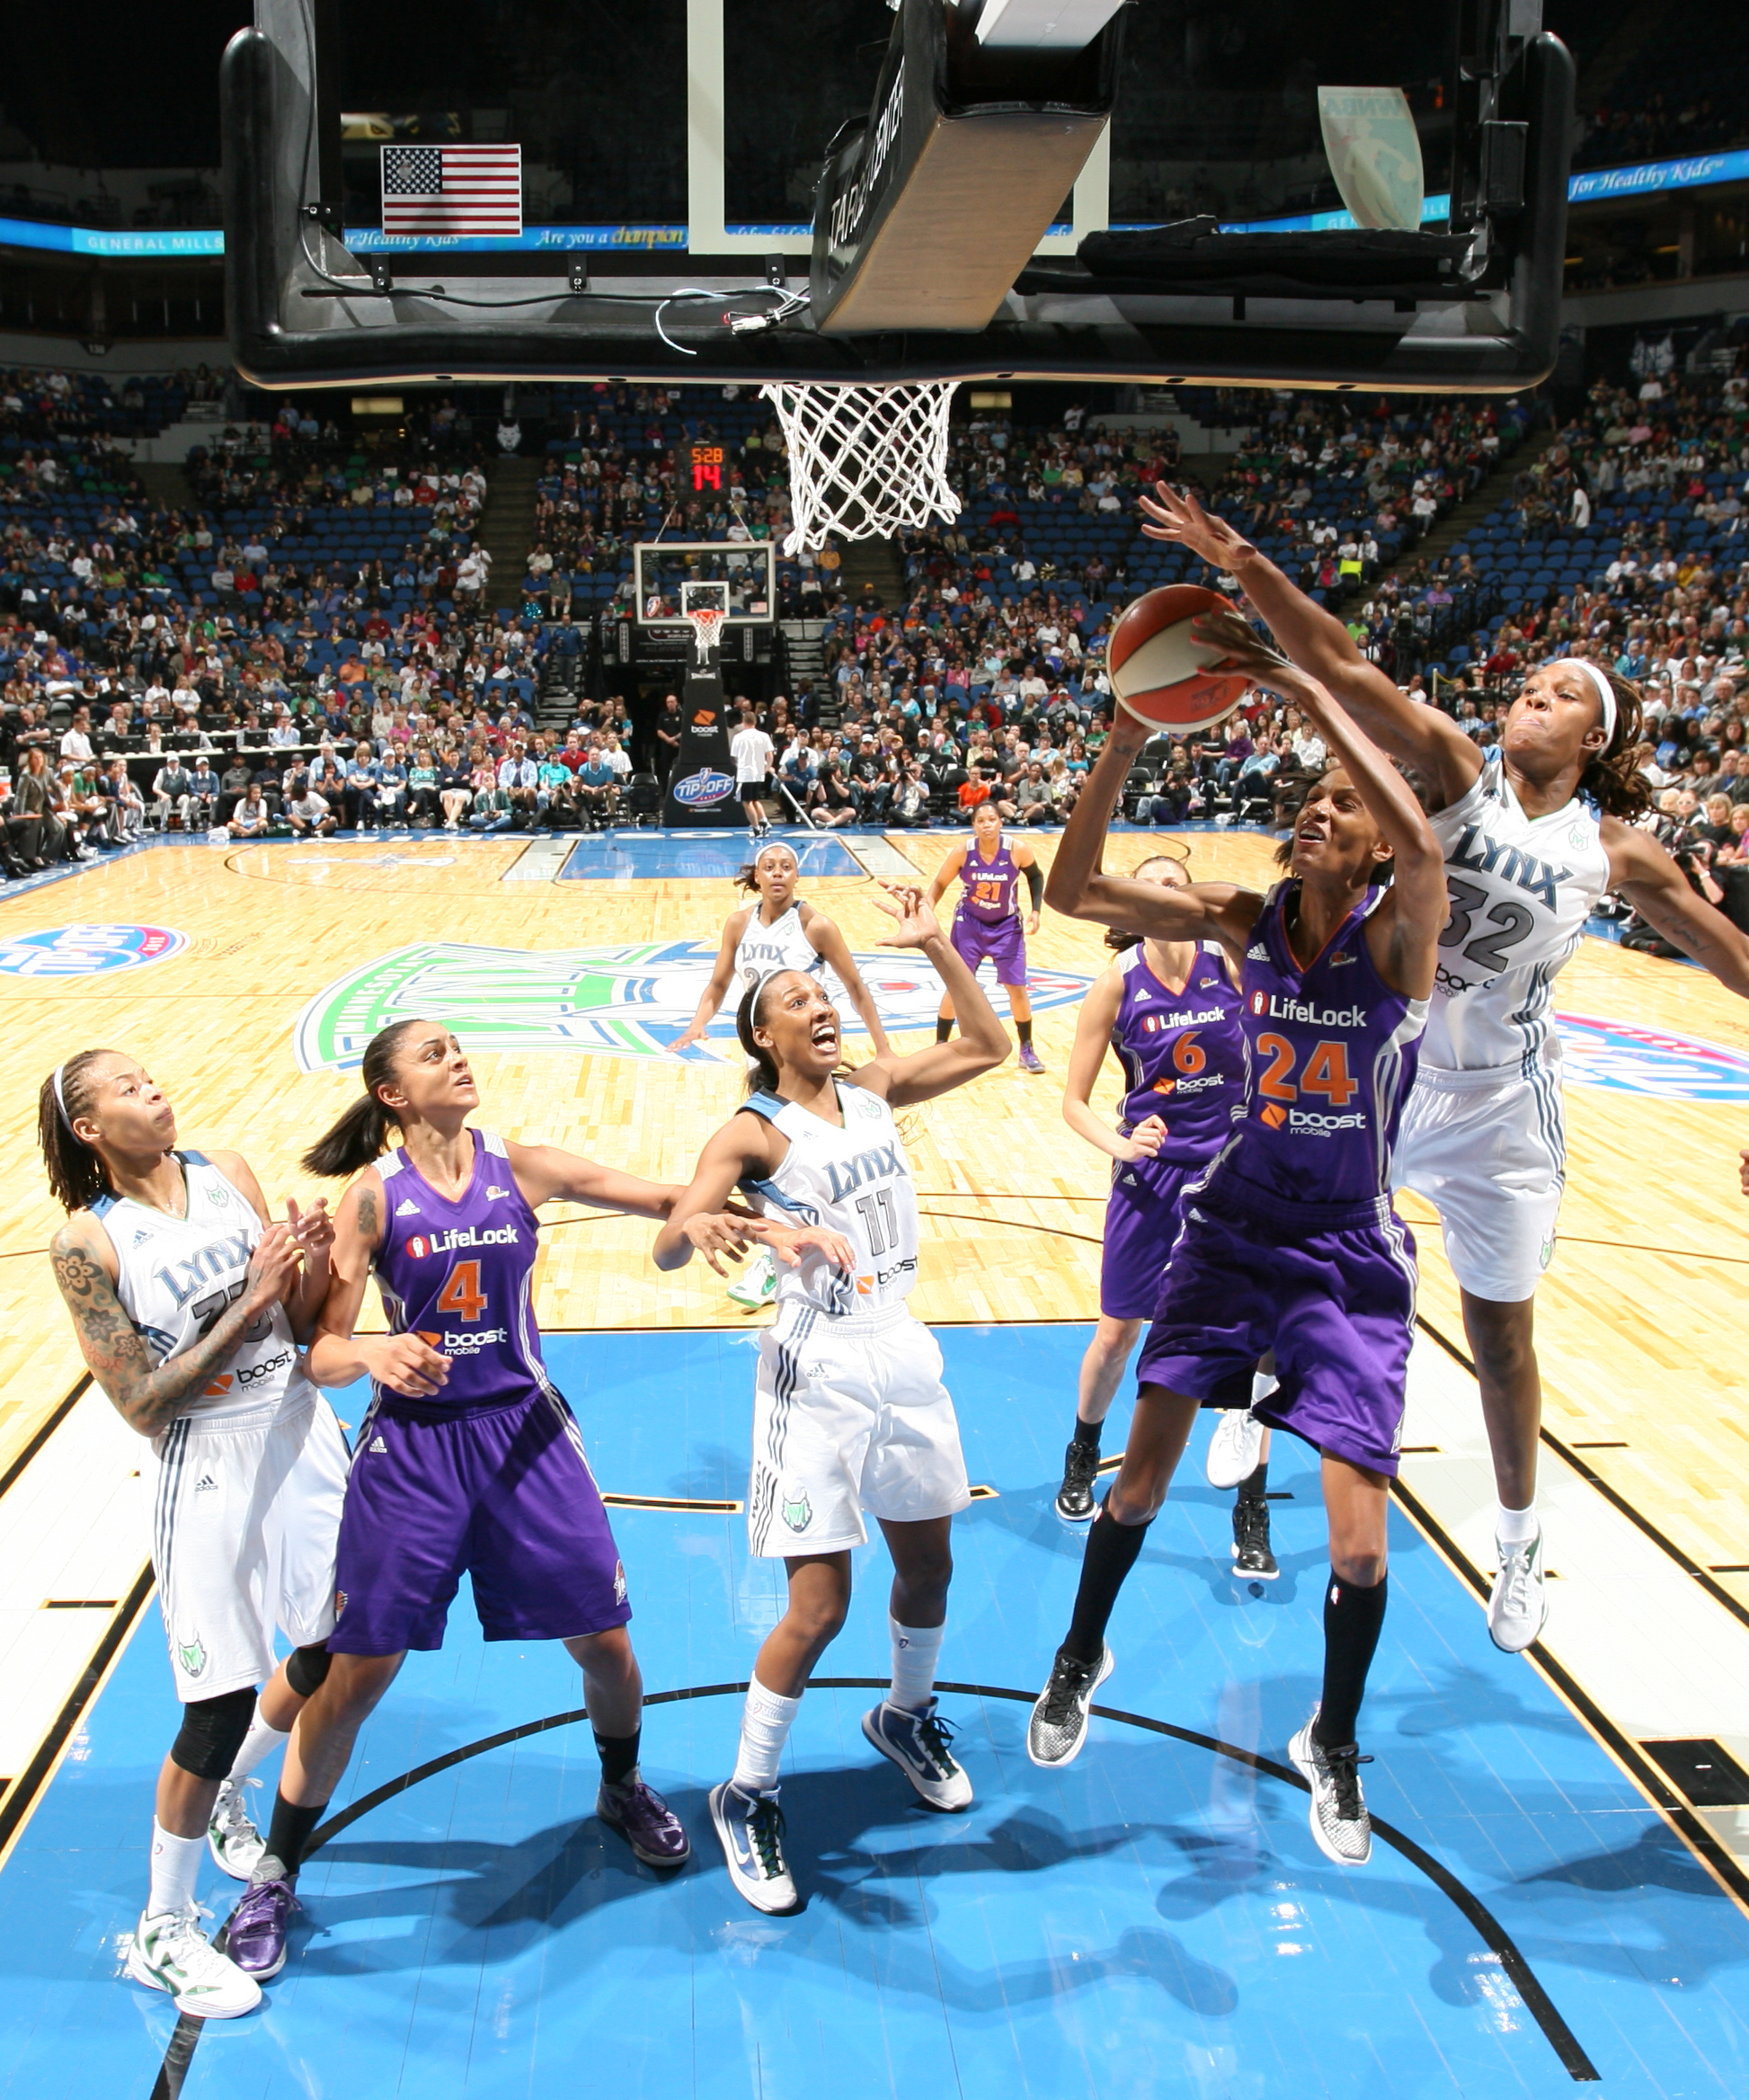 2012's Home-Opener: Lynx forward Rebekkah Brunson blocks one of her three shots on the night to go with her 12 points and nine rebounds.